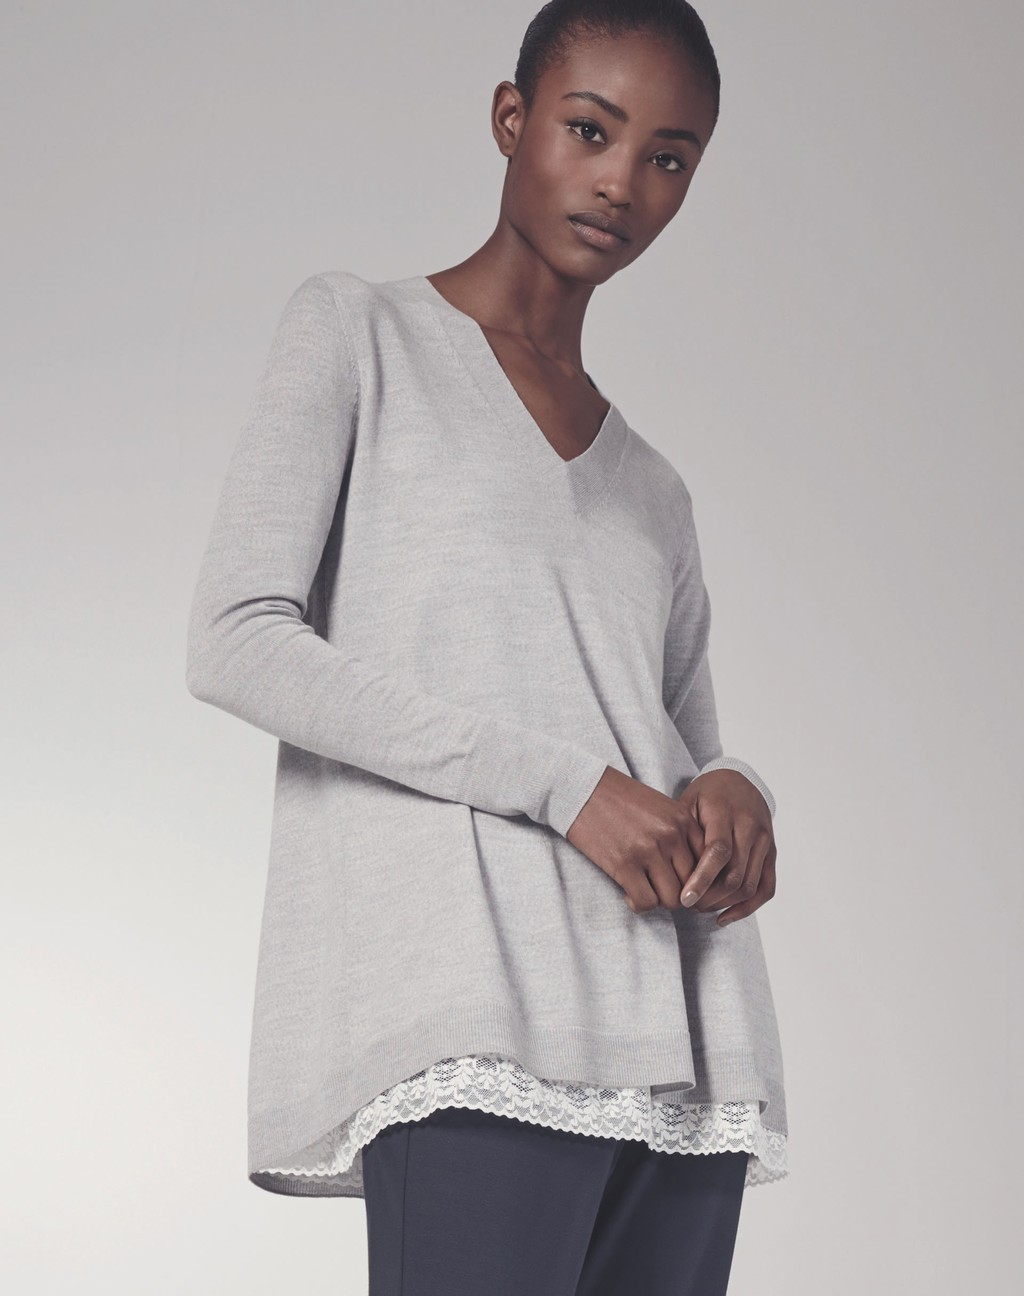 Panel Detail Swing Jumper - neckline: low v-neck; pattern: plain; length: below the bottom; predominant colour: light grey; occasions: casual, creative work; style: a-line; fibres: wool - 100%; fit: loose; sleeve length: long sleeve; sleeve style: standard; texture group: knits/crochet; pattern type: knitted - fine stitch; season: s/s 2016; wardrobe: basic